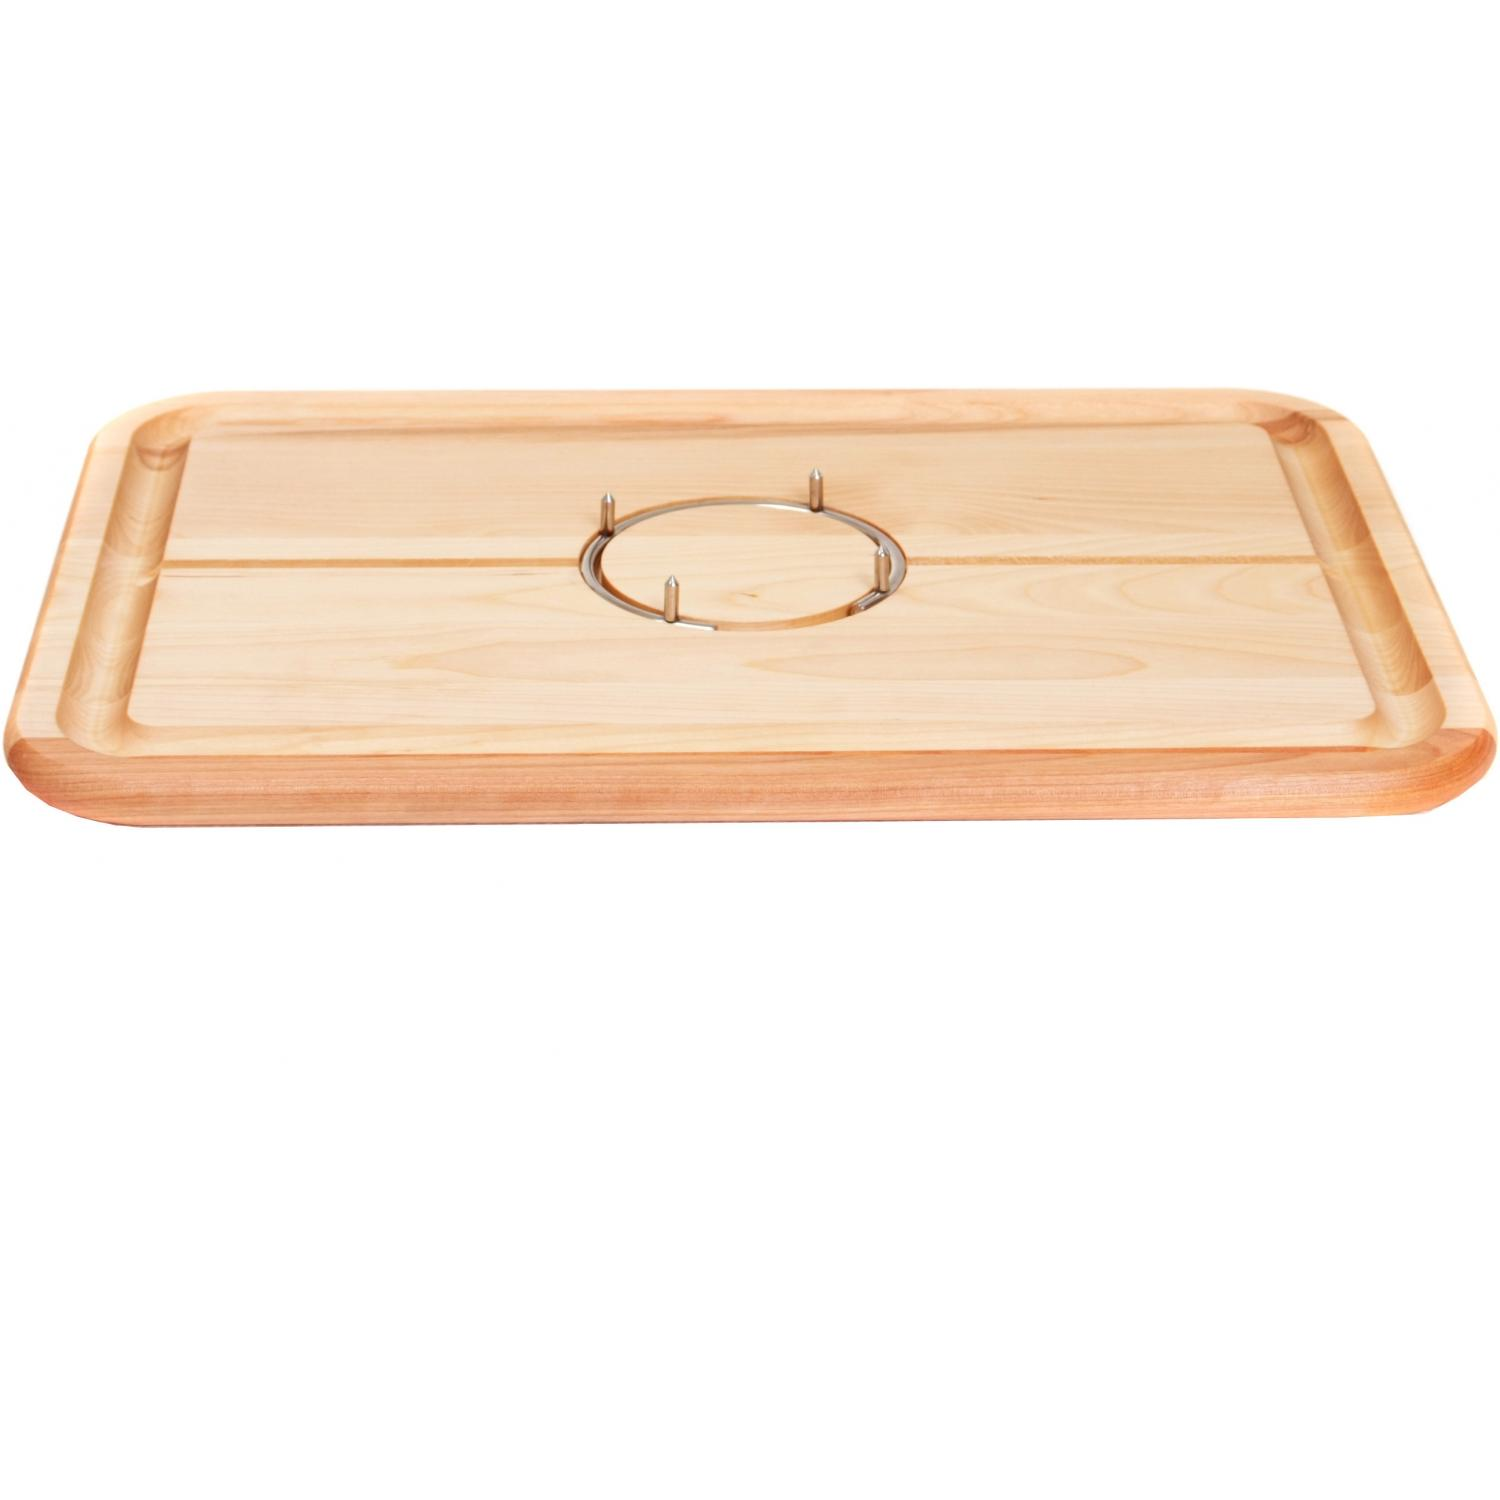 The Grabber Cutting Board With Stainless Ring